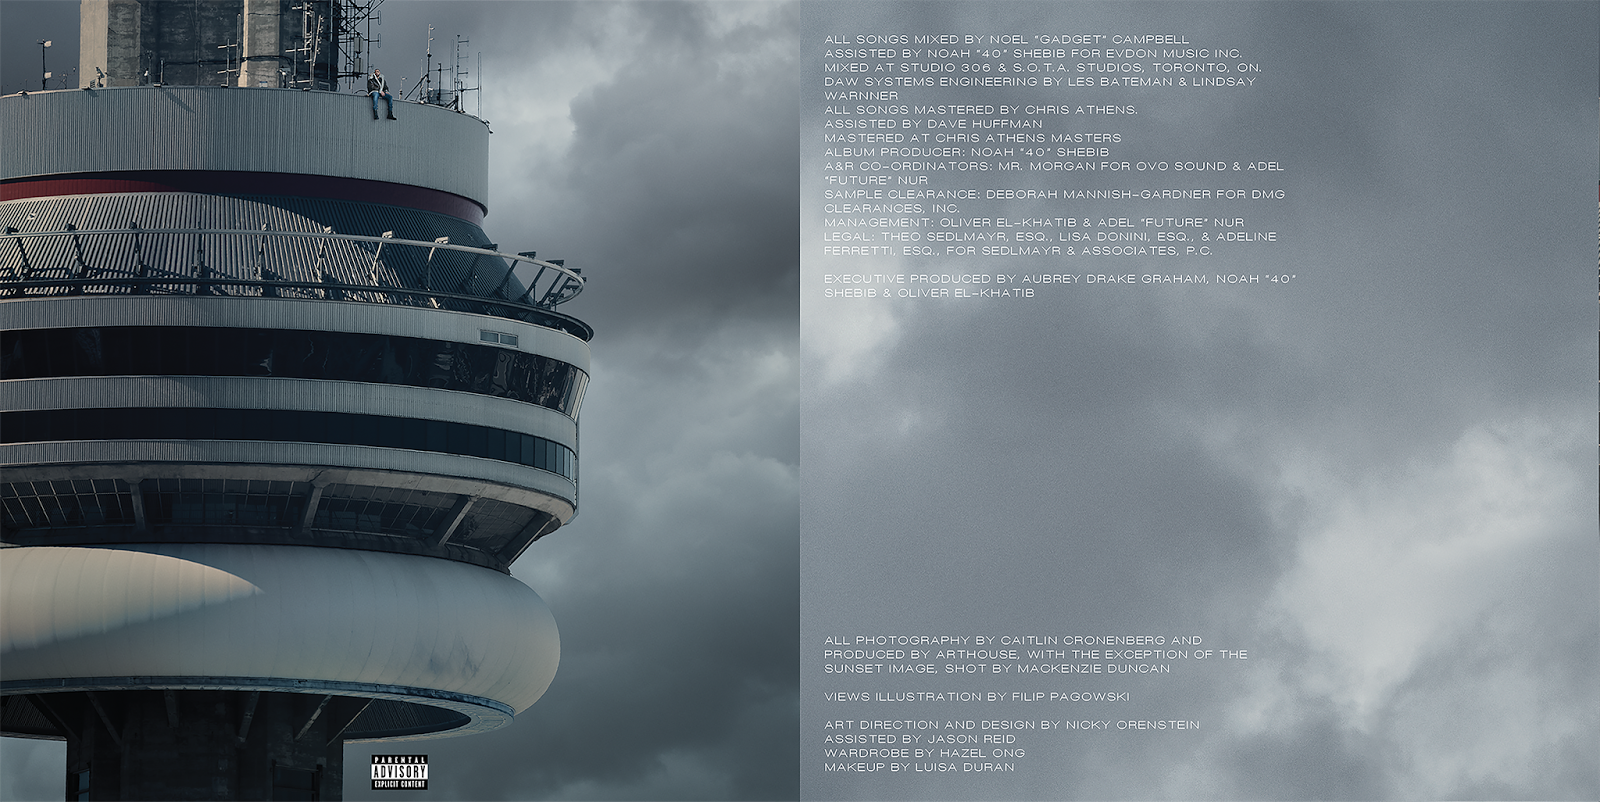 Views album credits